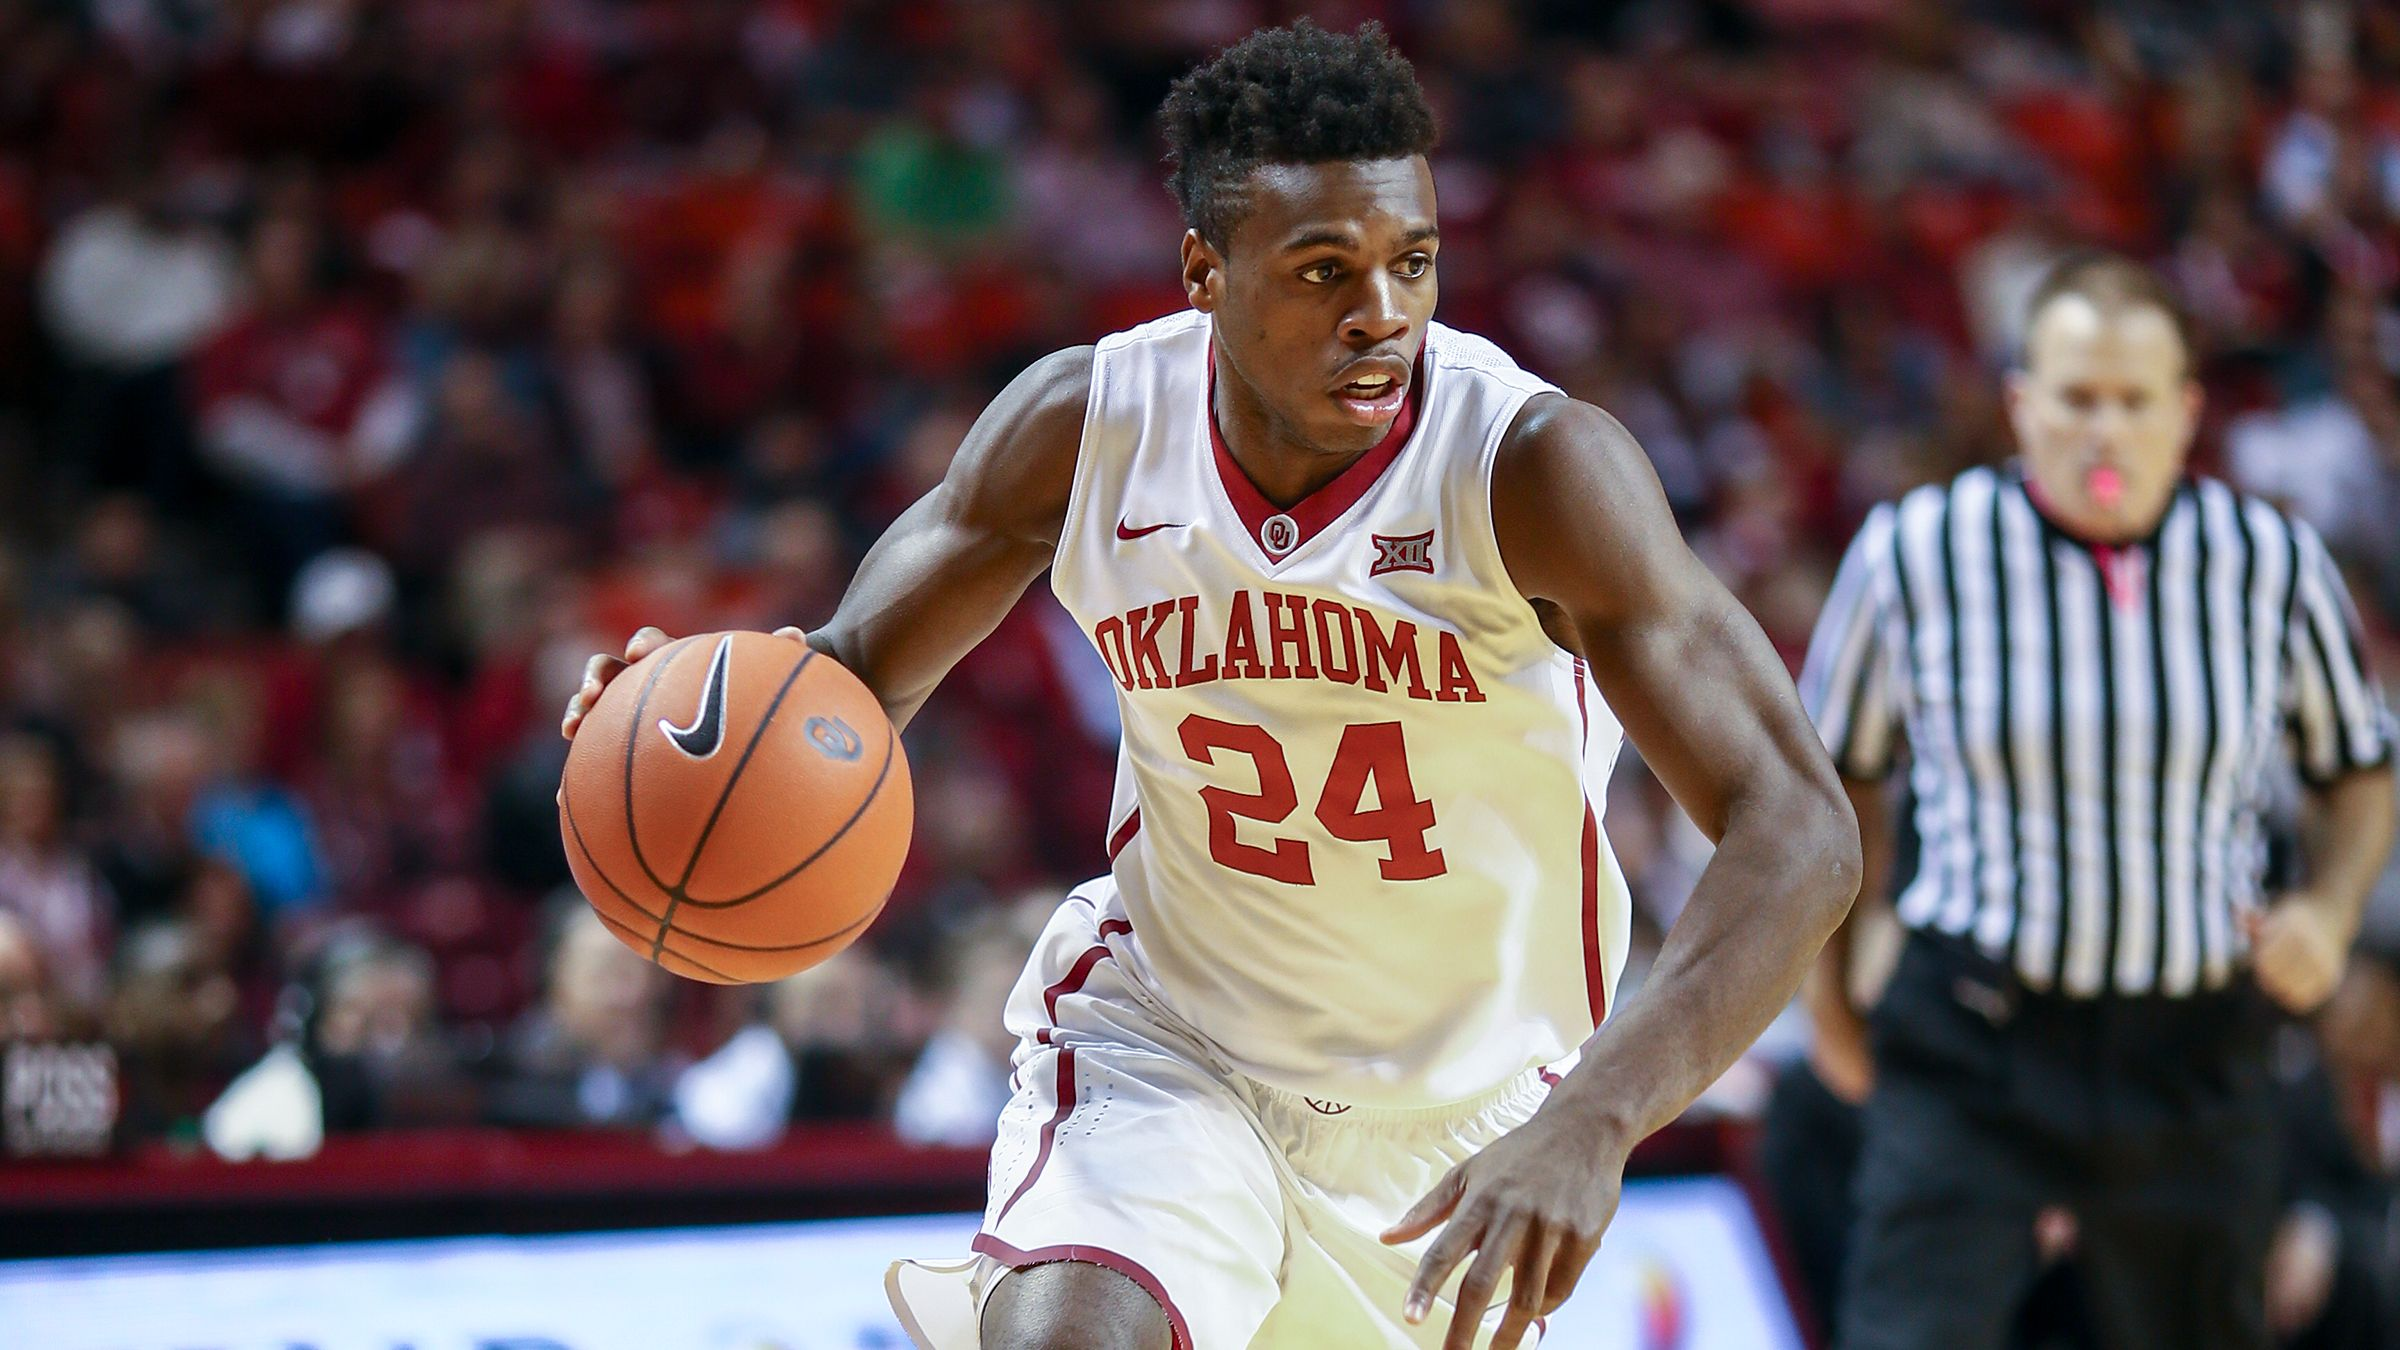 Buddy Hield driving into the basket